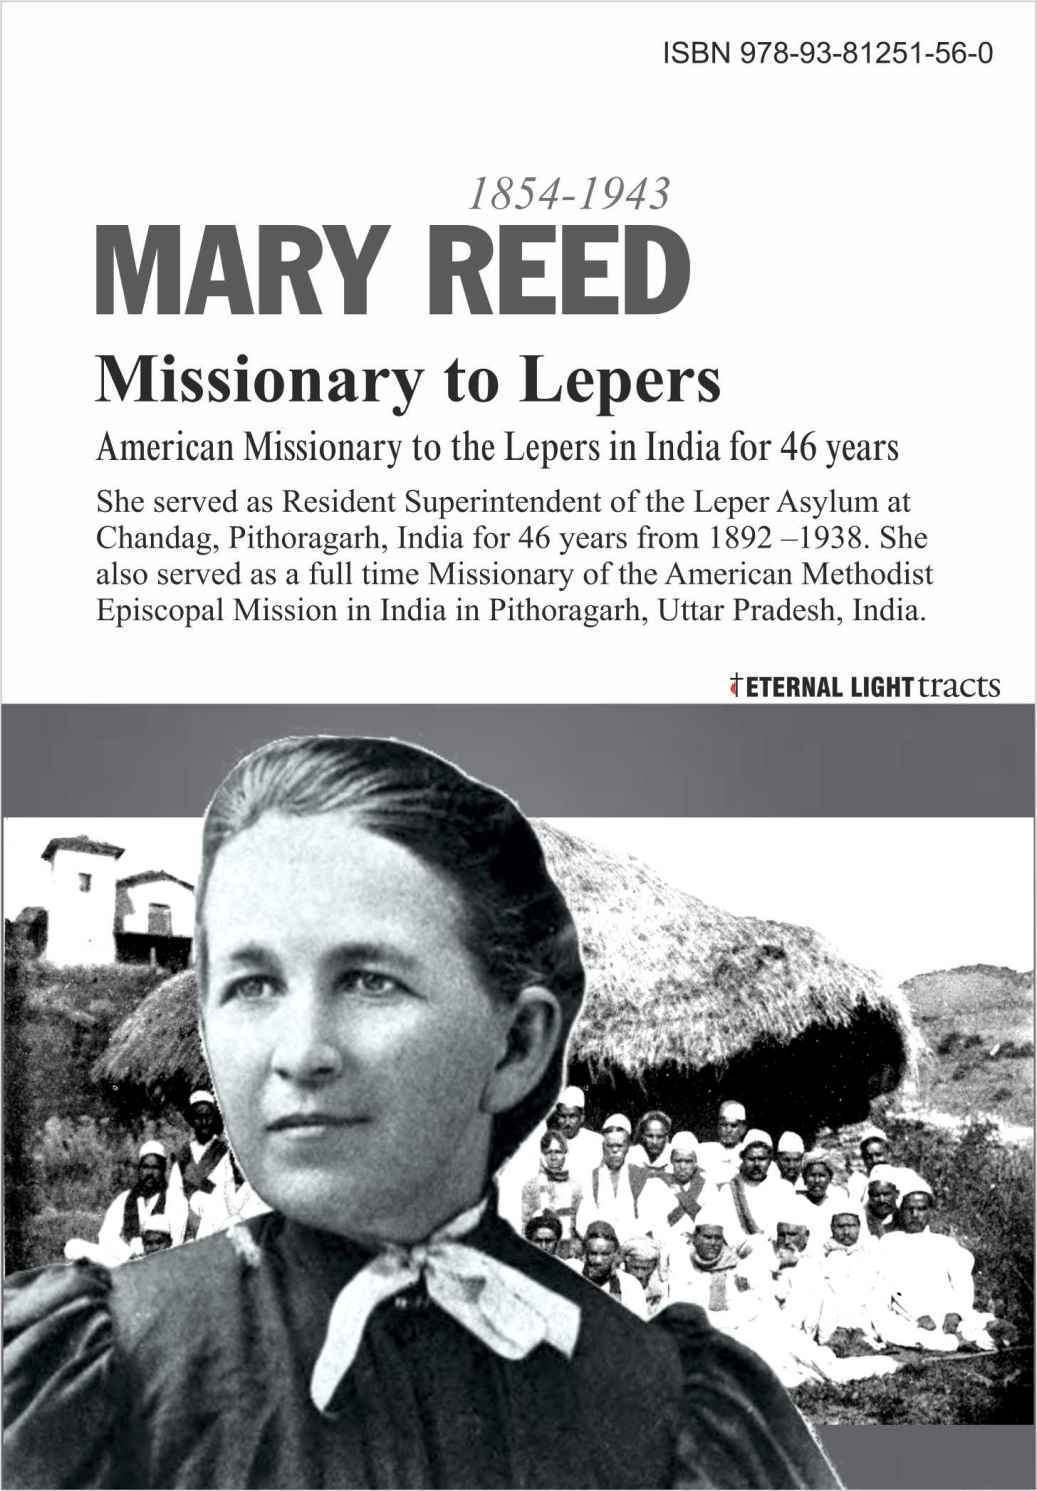 Mary Reed, an American missionary to India